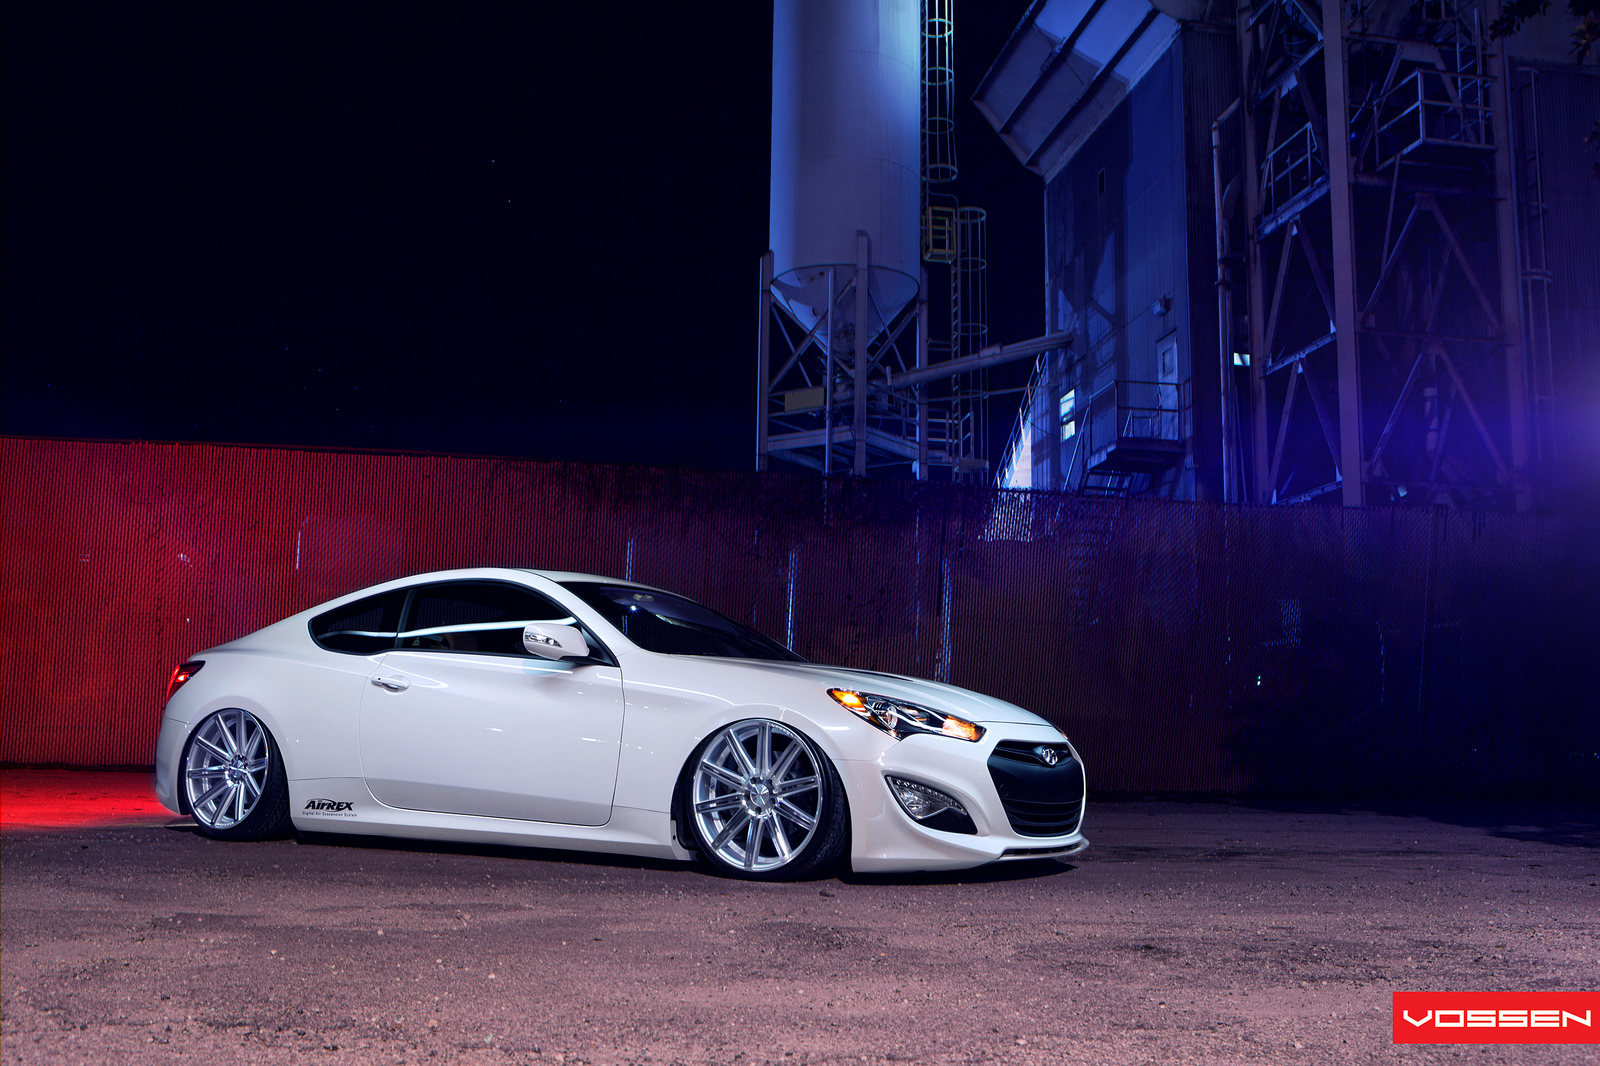 2013 Hyundai Genesis Coupe Unveiled With Awesome New